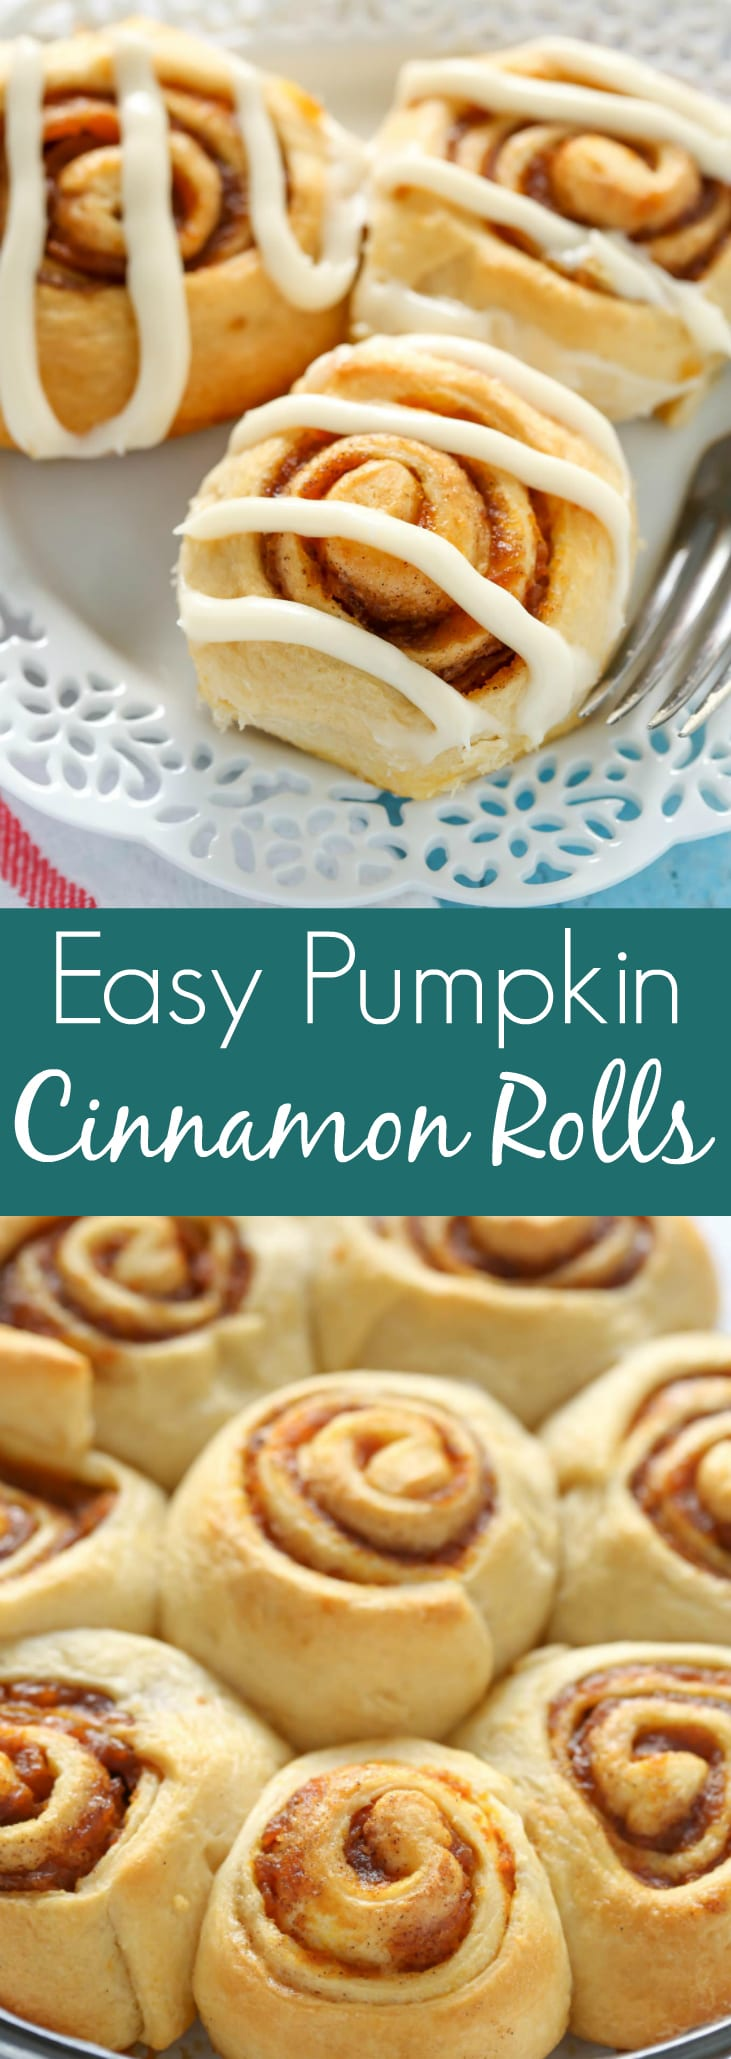 Easy Pumpkin Cinnamon Rolls made with crescent roll dough and topped with a homemade cream cheese frosting. The perfect fall breakfast!